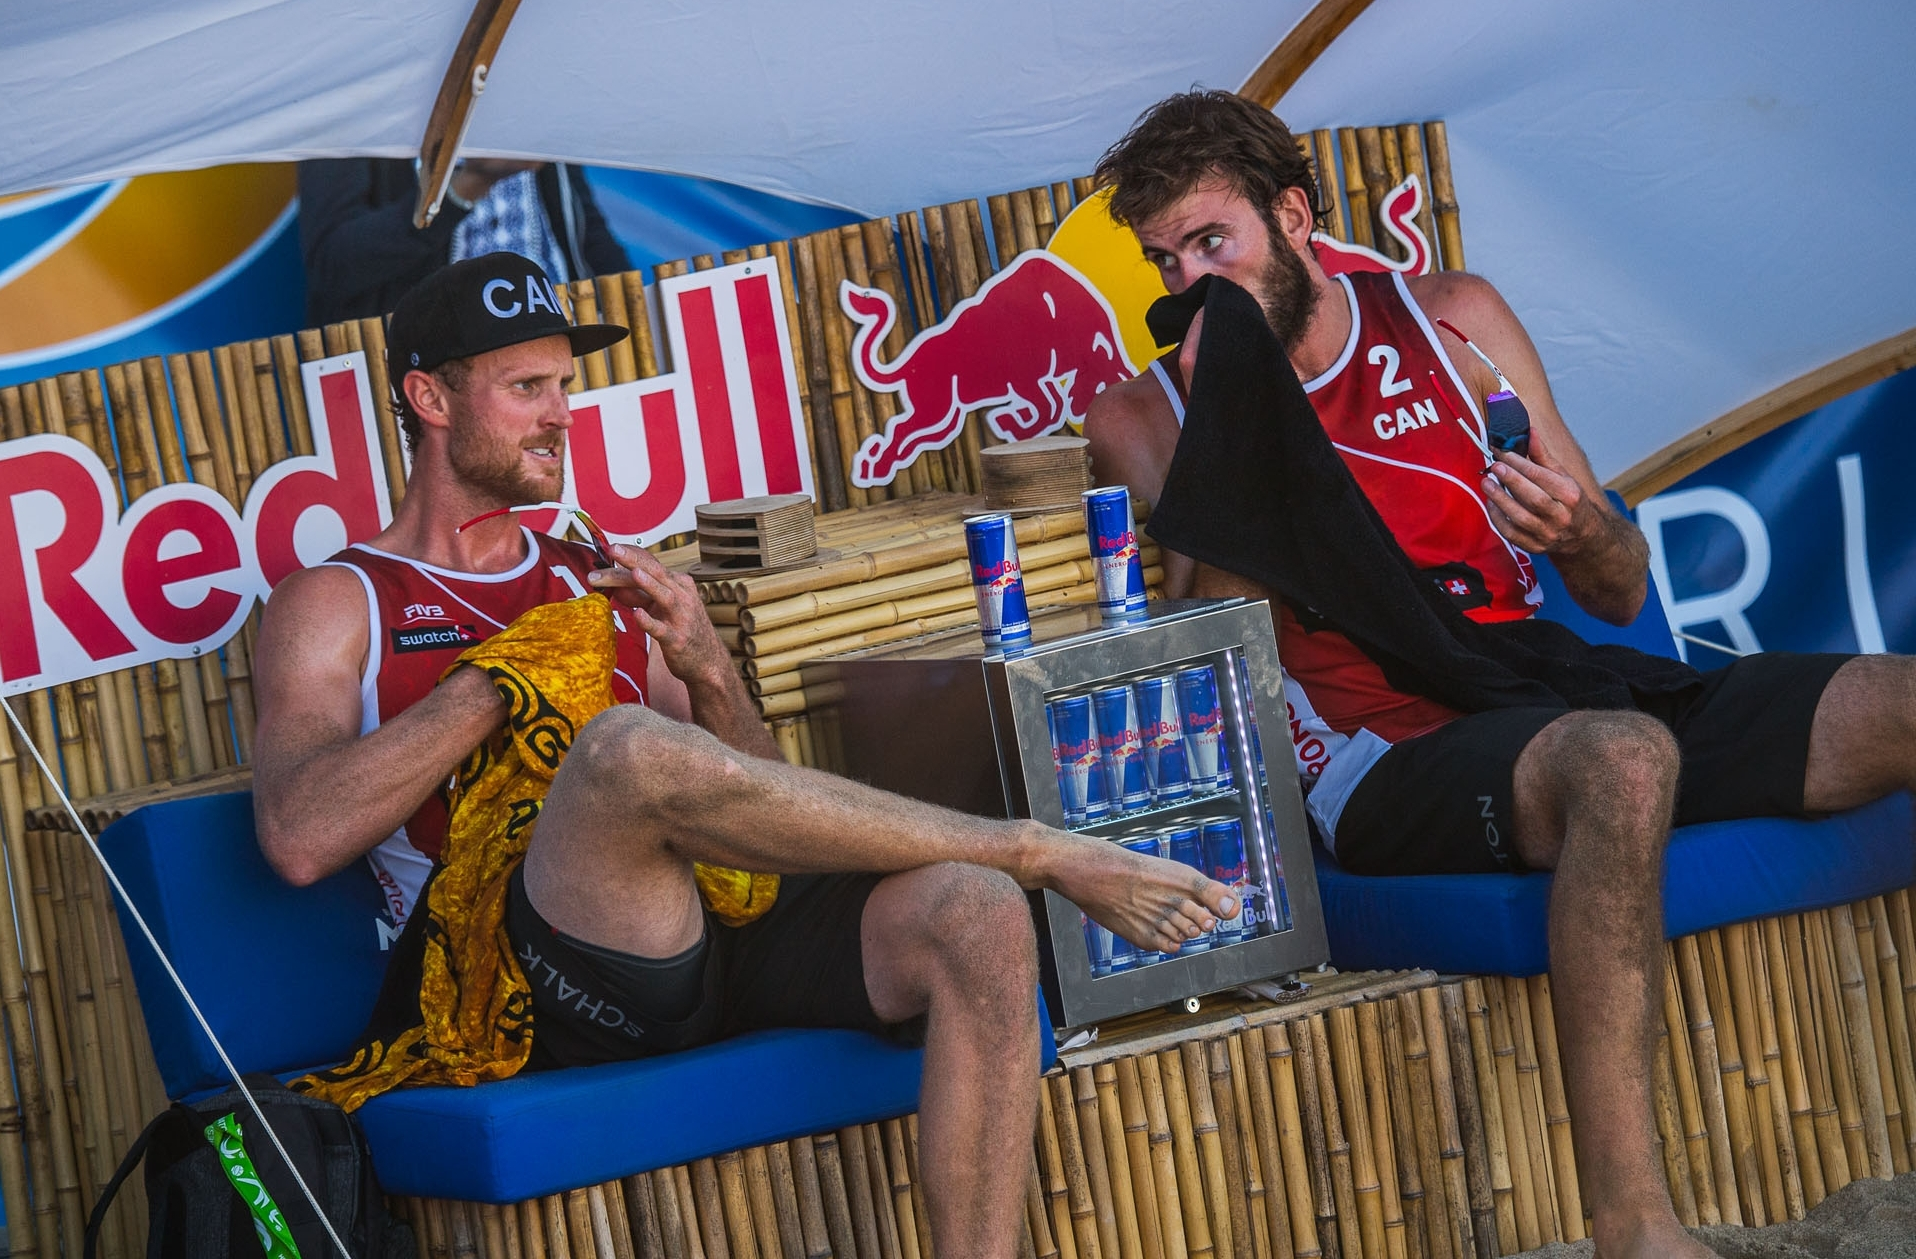 Saxton/Schalk will go in search of their first victory at the #TorontoFinals on Friday. Photocredit: Joerg Mitter.